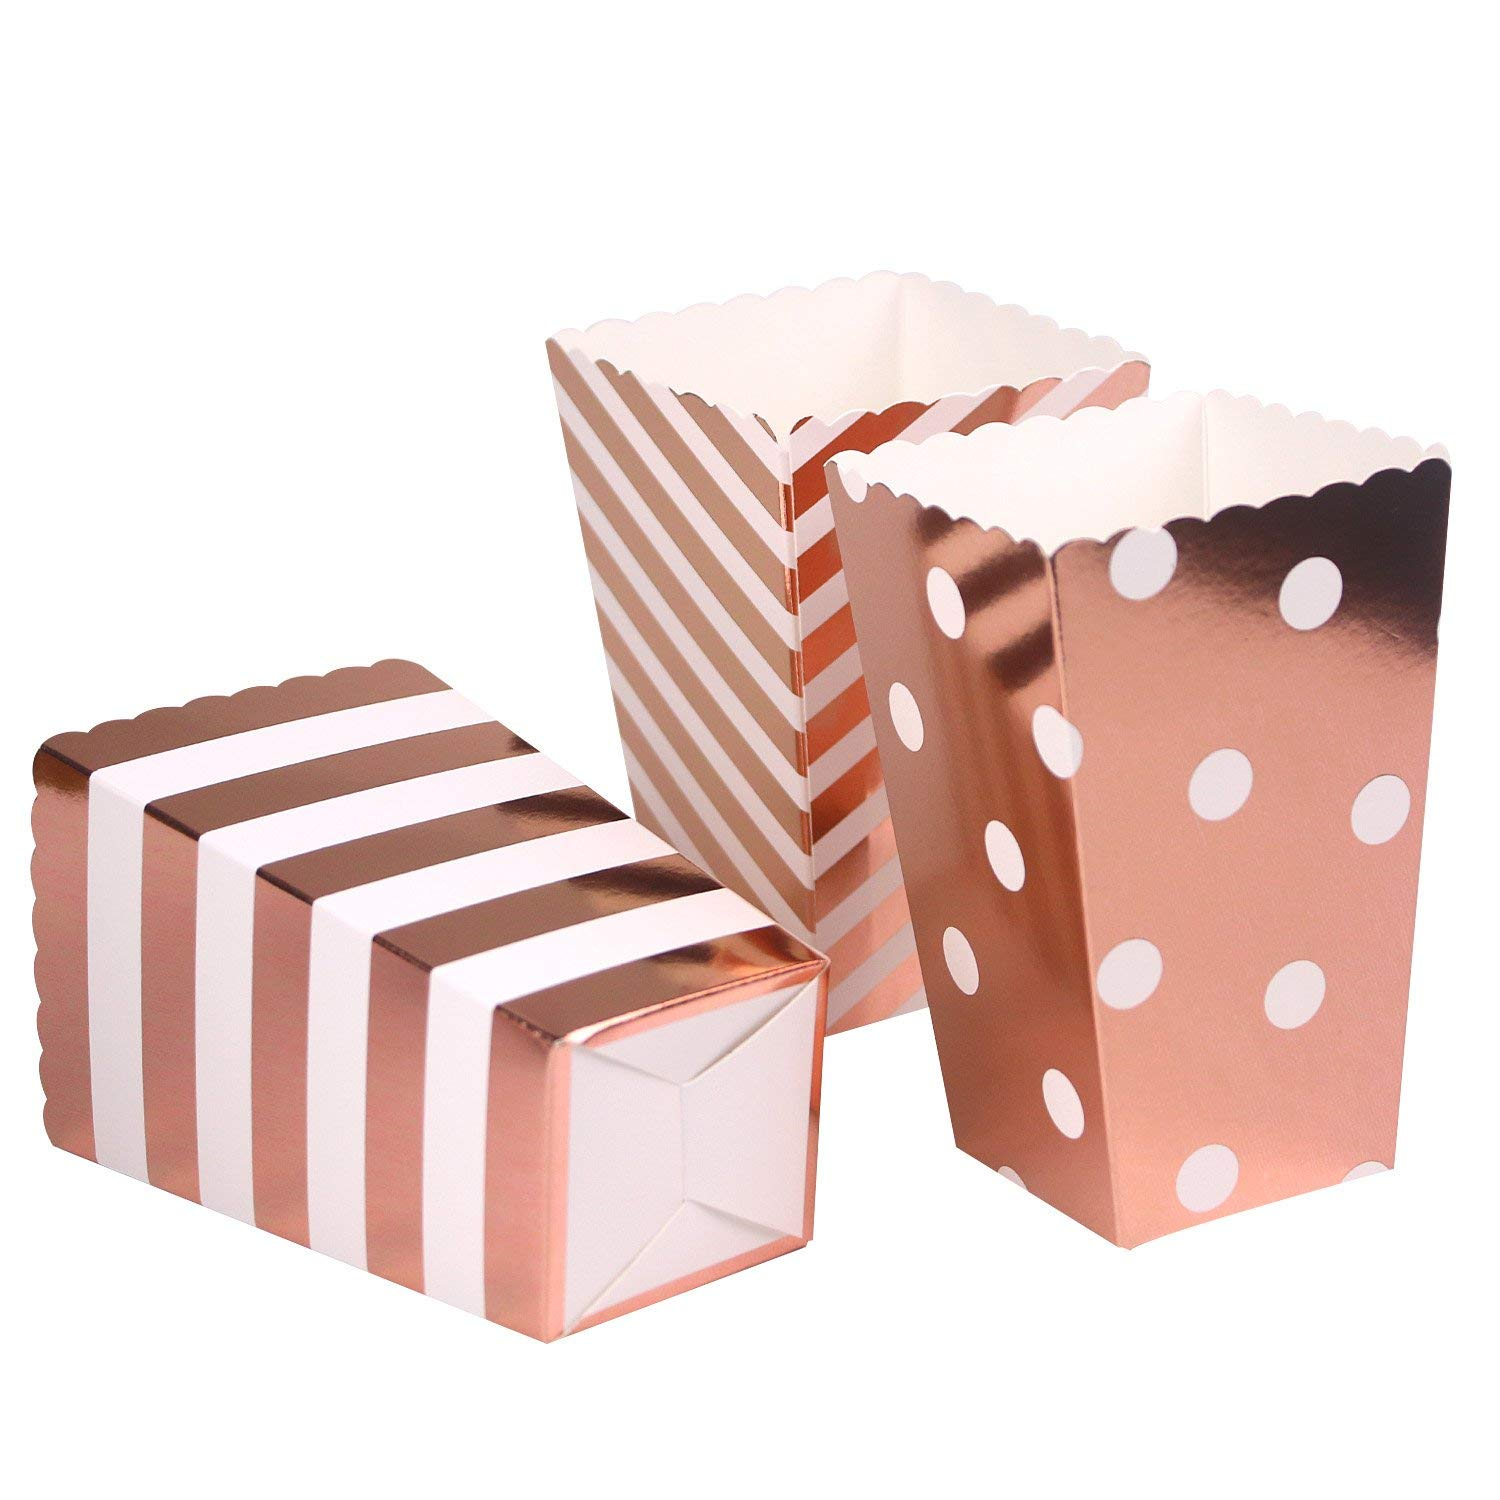 Rose Gold Popcorn Boxes Paper Popcorn Containers for Movie Dessert Tables Birthday Wedding Party Supplies Pack of 100